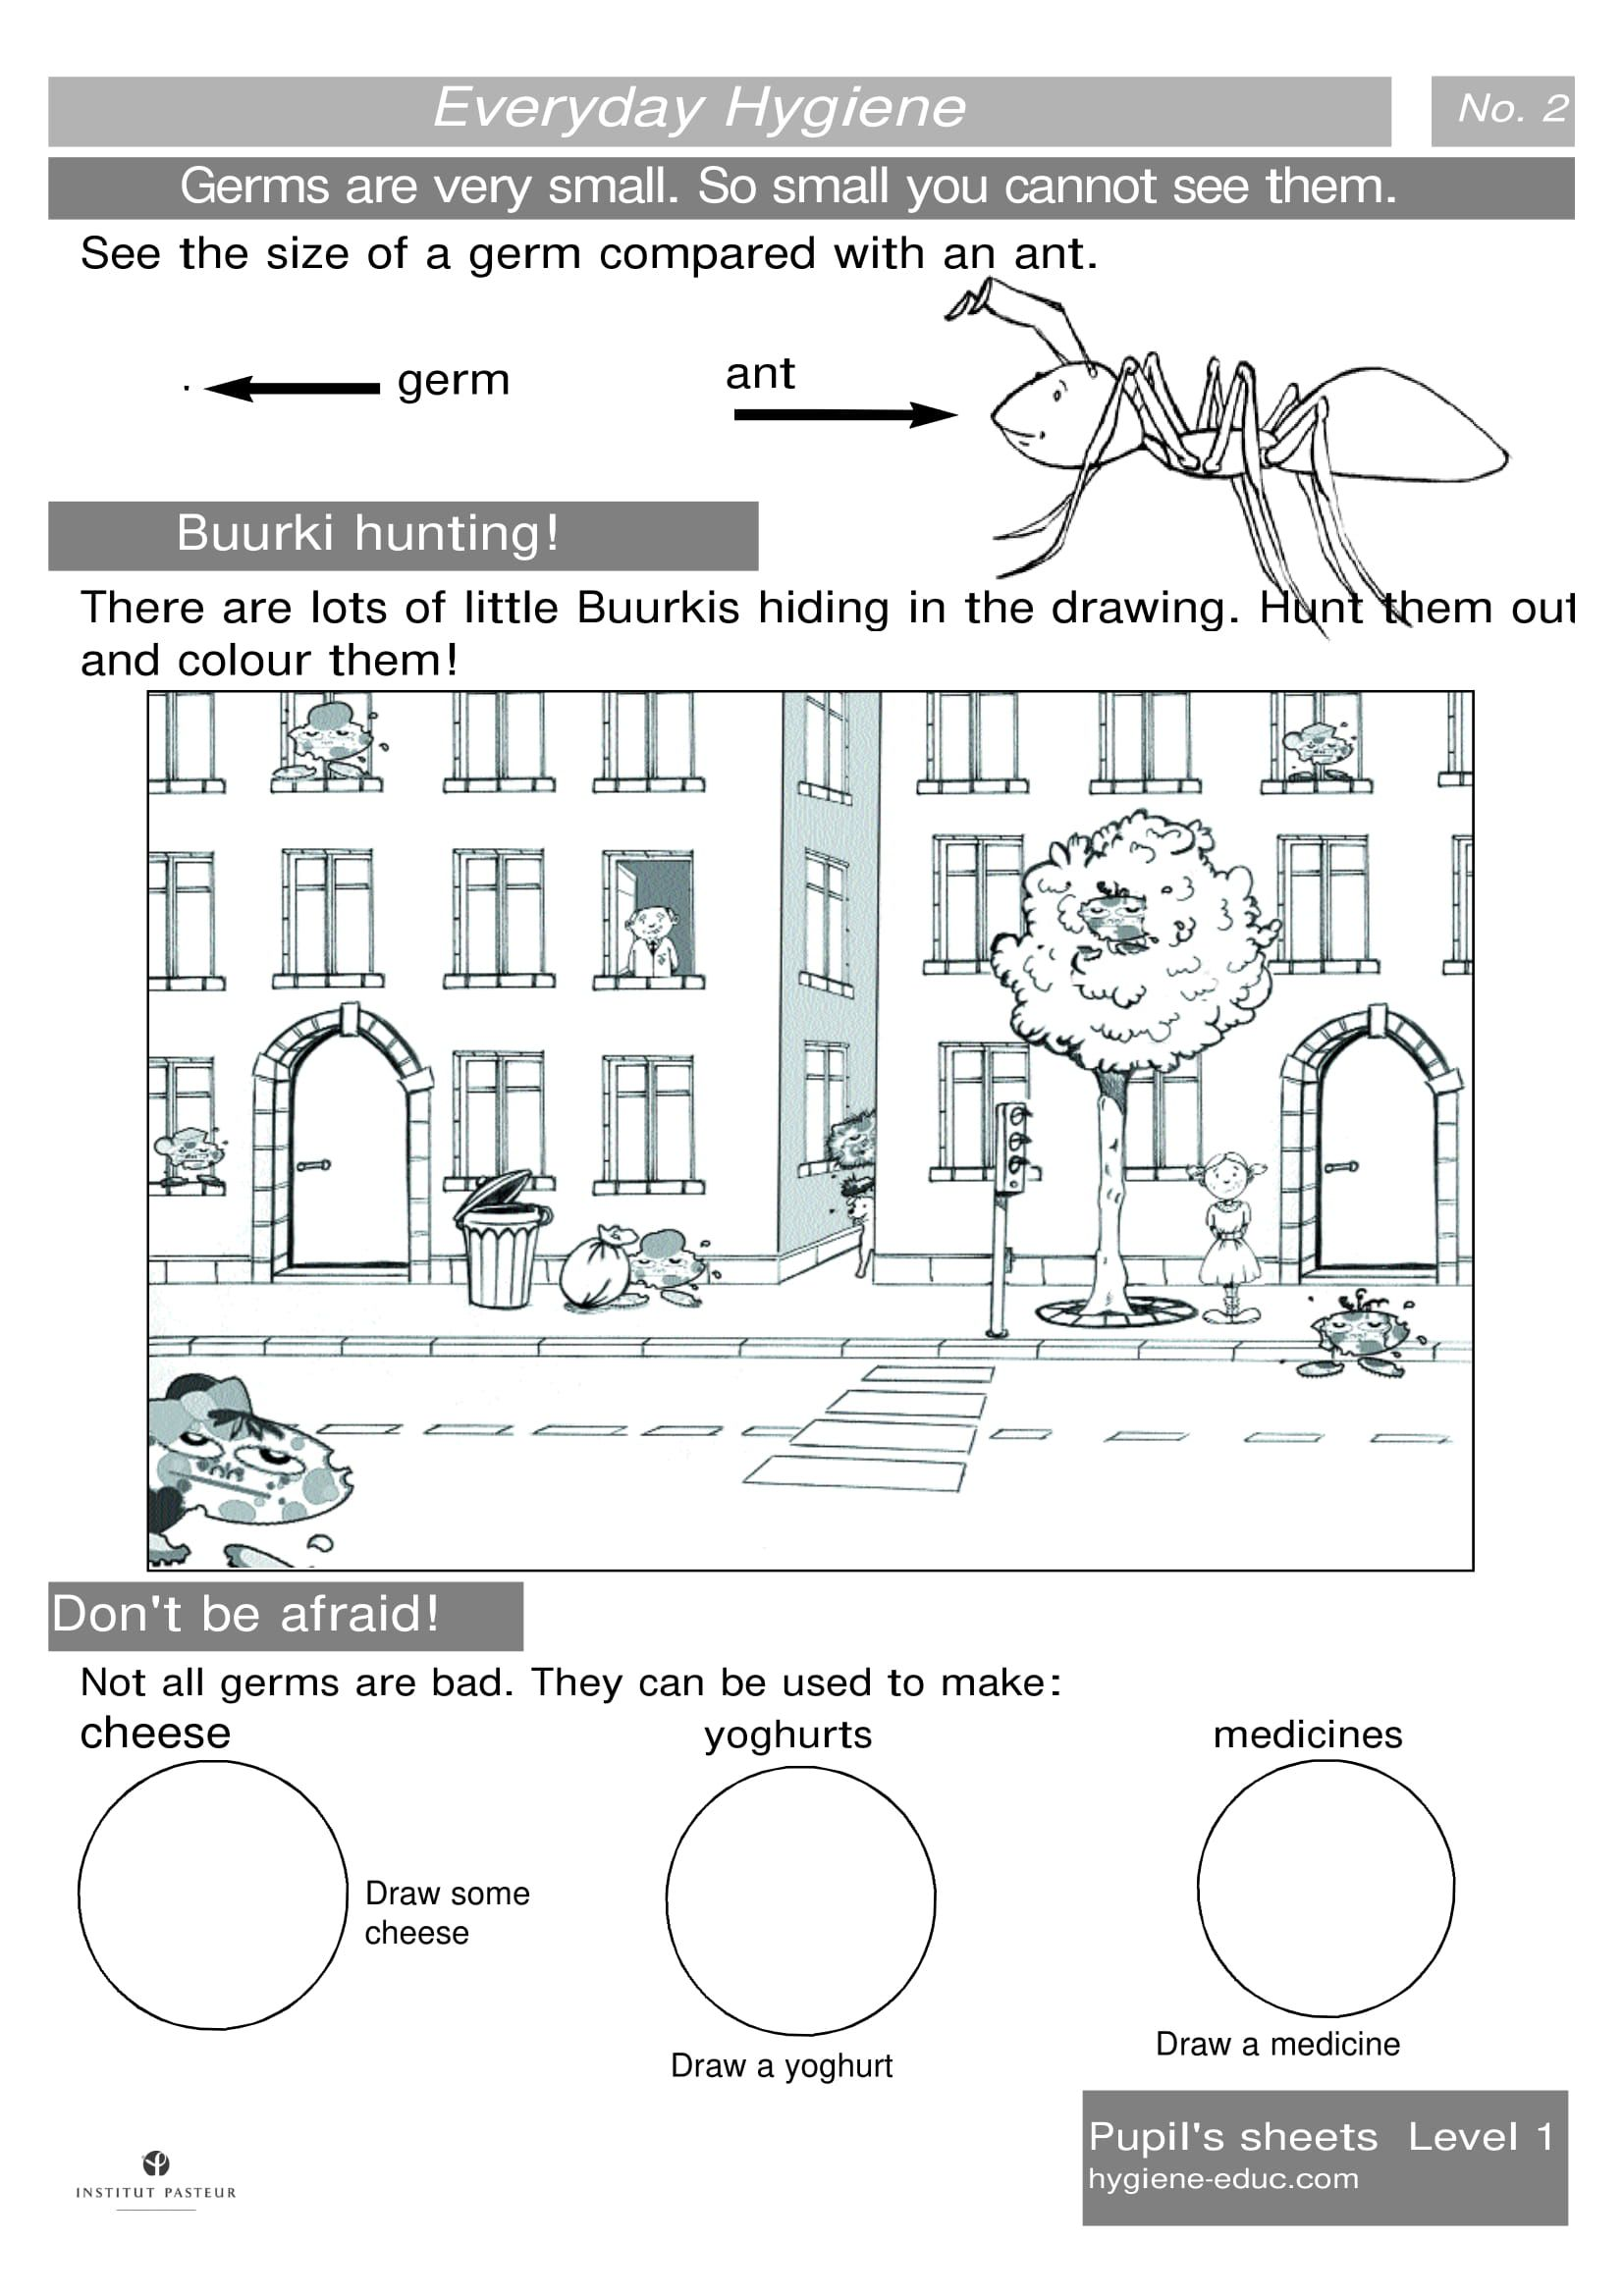 Everyday Hygiene Worksheets Level 1 Worksheets 2 Germs Are